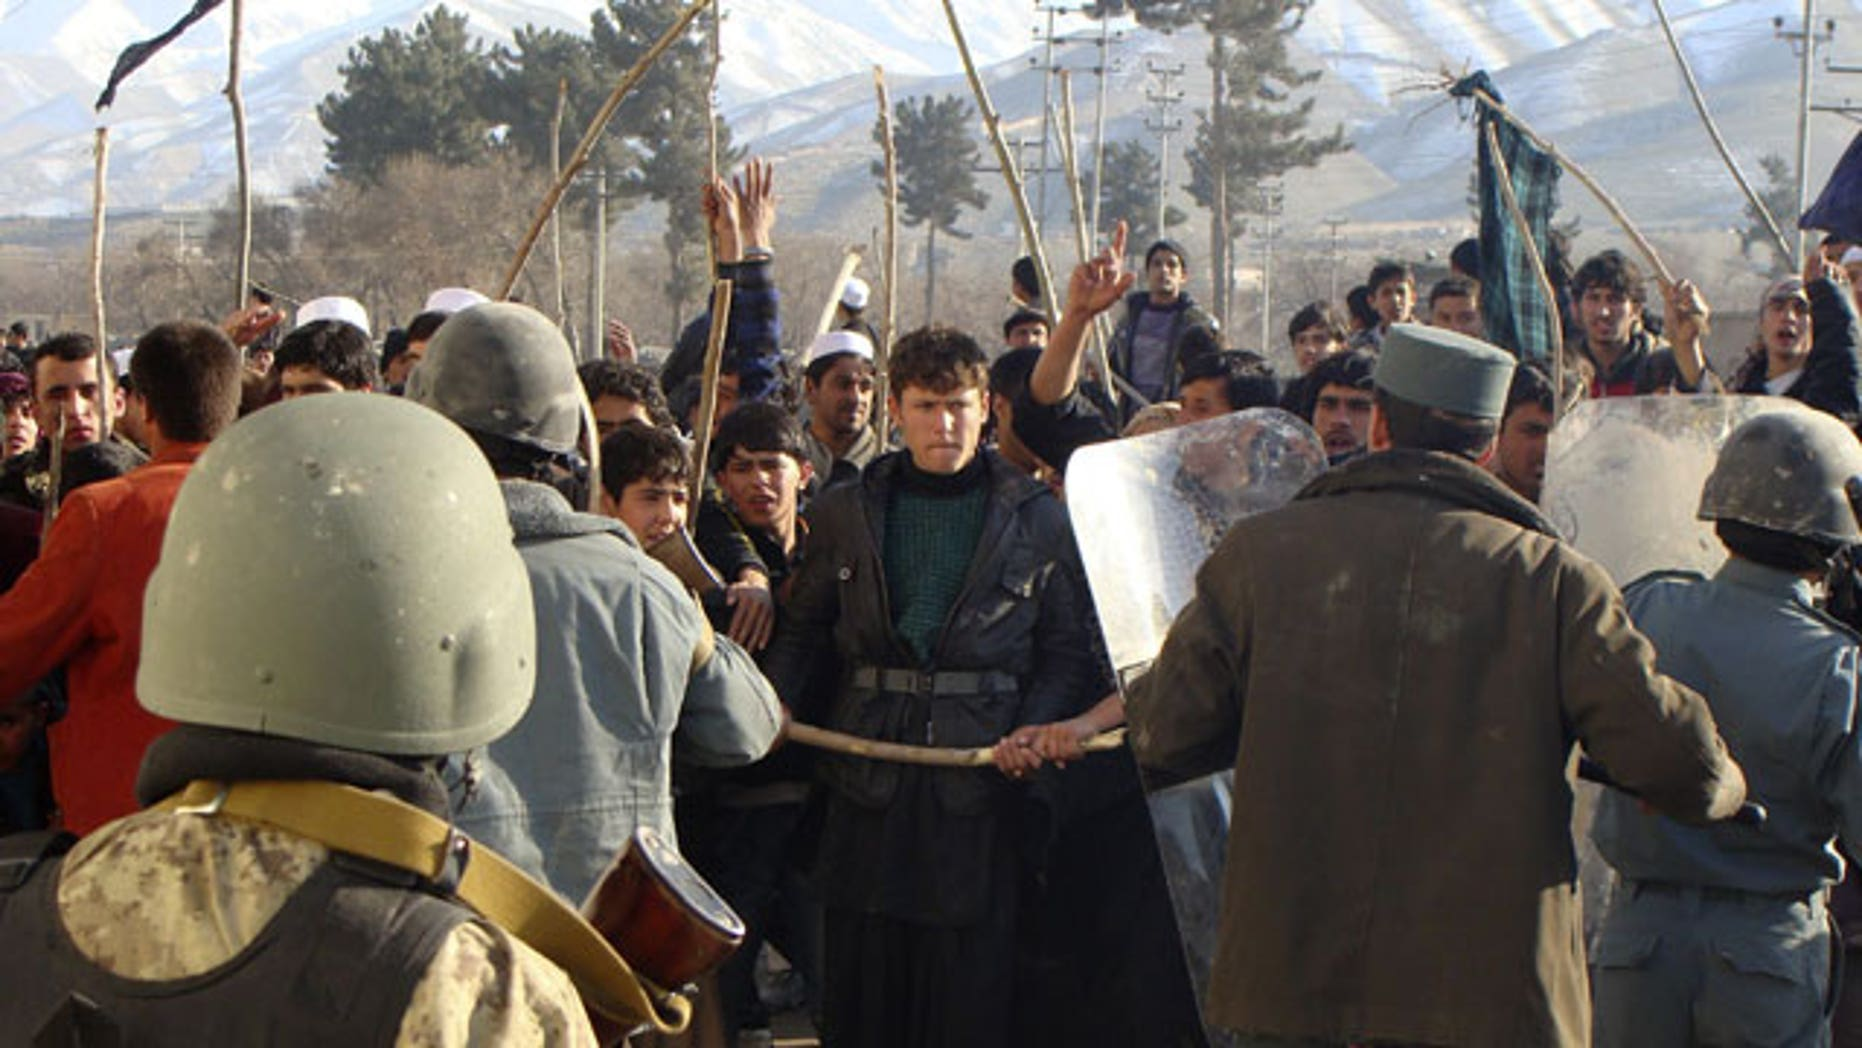 Feb. 24, 2012: Afghan police tries to restrain demonstrators during an anti-US protest in Baghlan province, north of Kabul, Afghanistan.